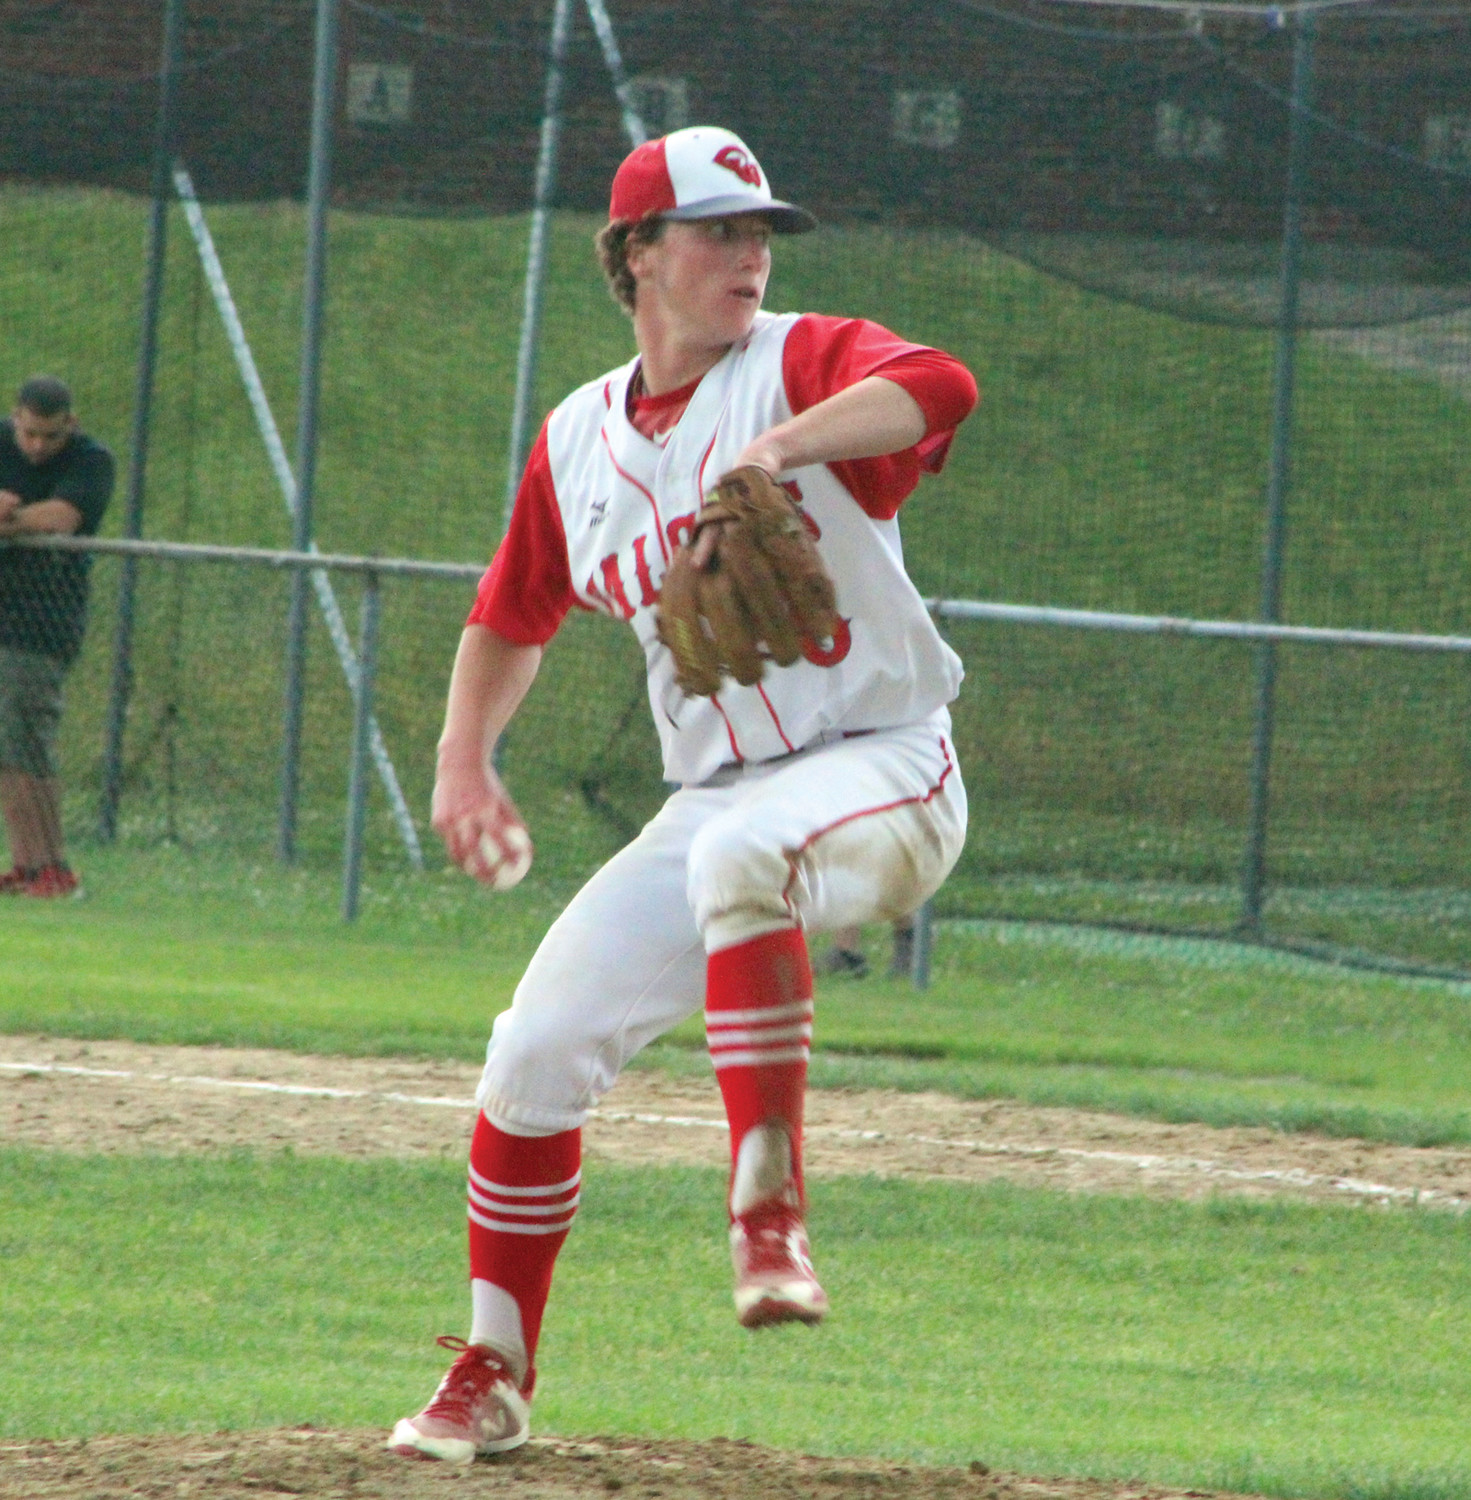 PLAYOFF BASEBALL: Cranston West pitcher Cam Harris delivers a pitch.